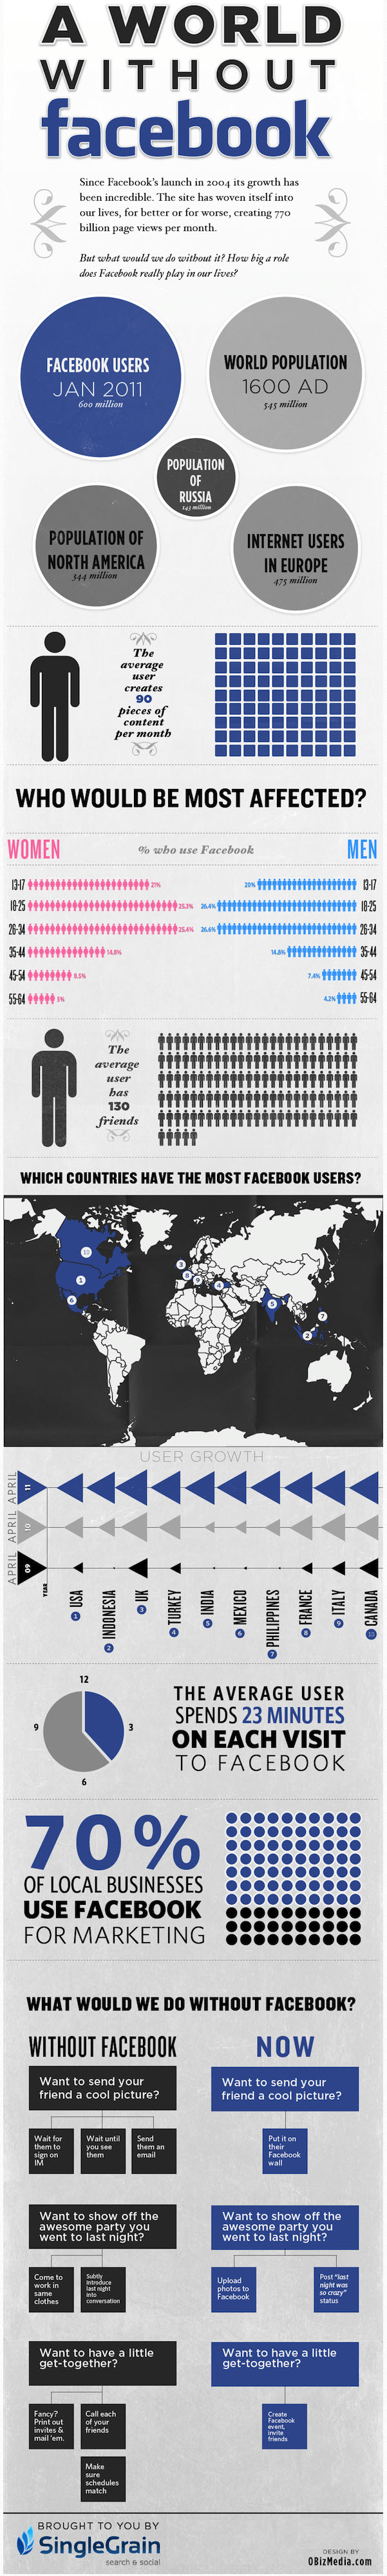 Facebook Infographic a world without Facebook